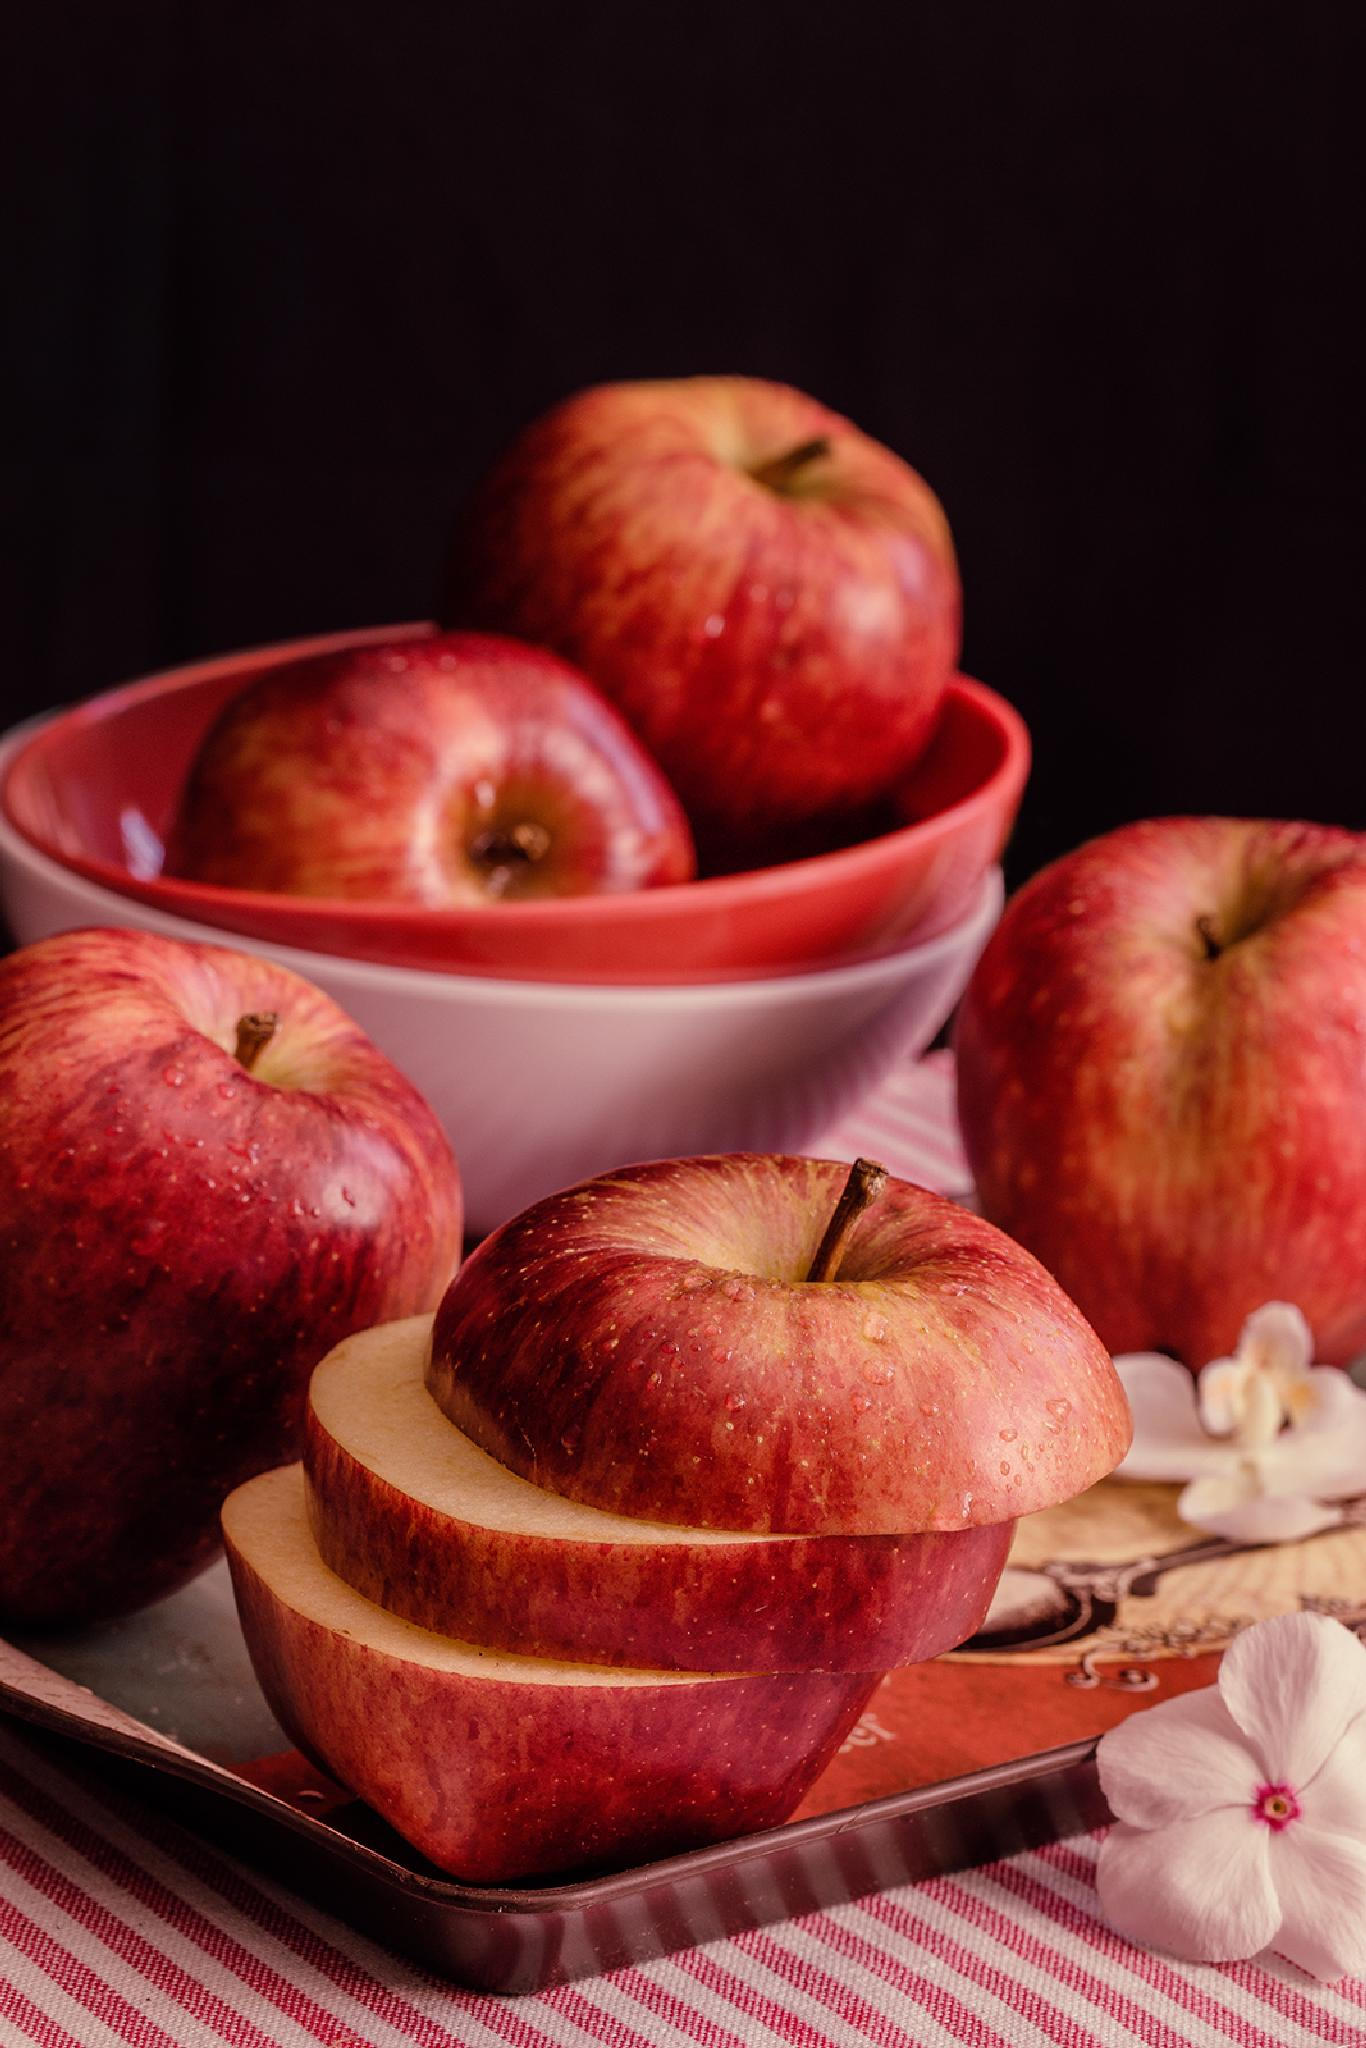 Red apples by Ana Gomez